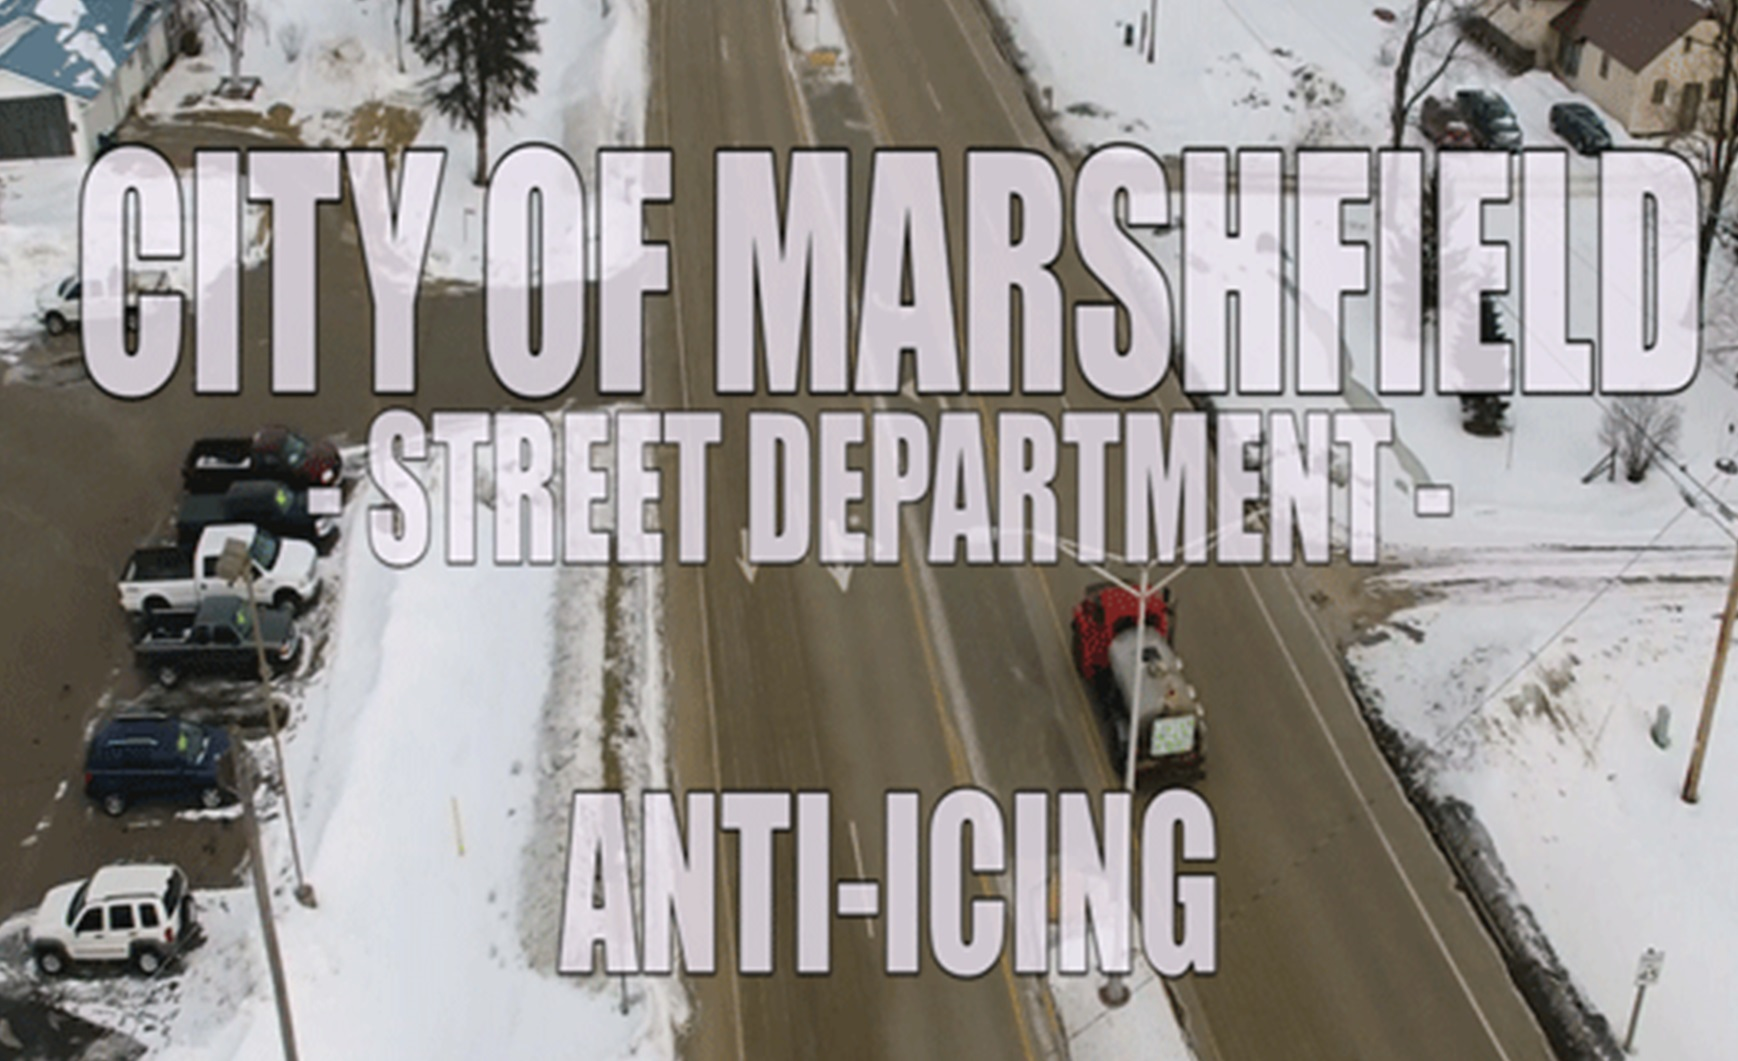 Anti-Icing in Marshfield, WI